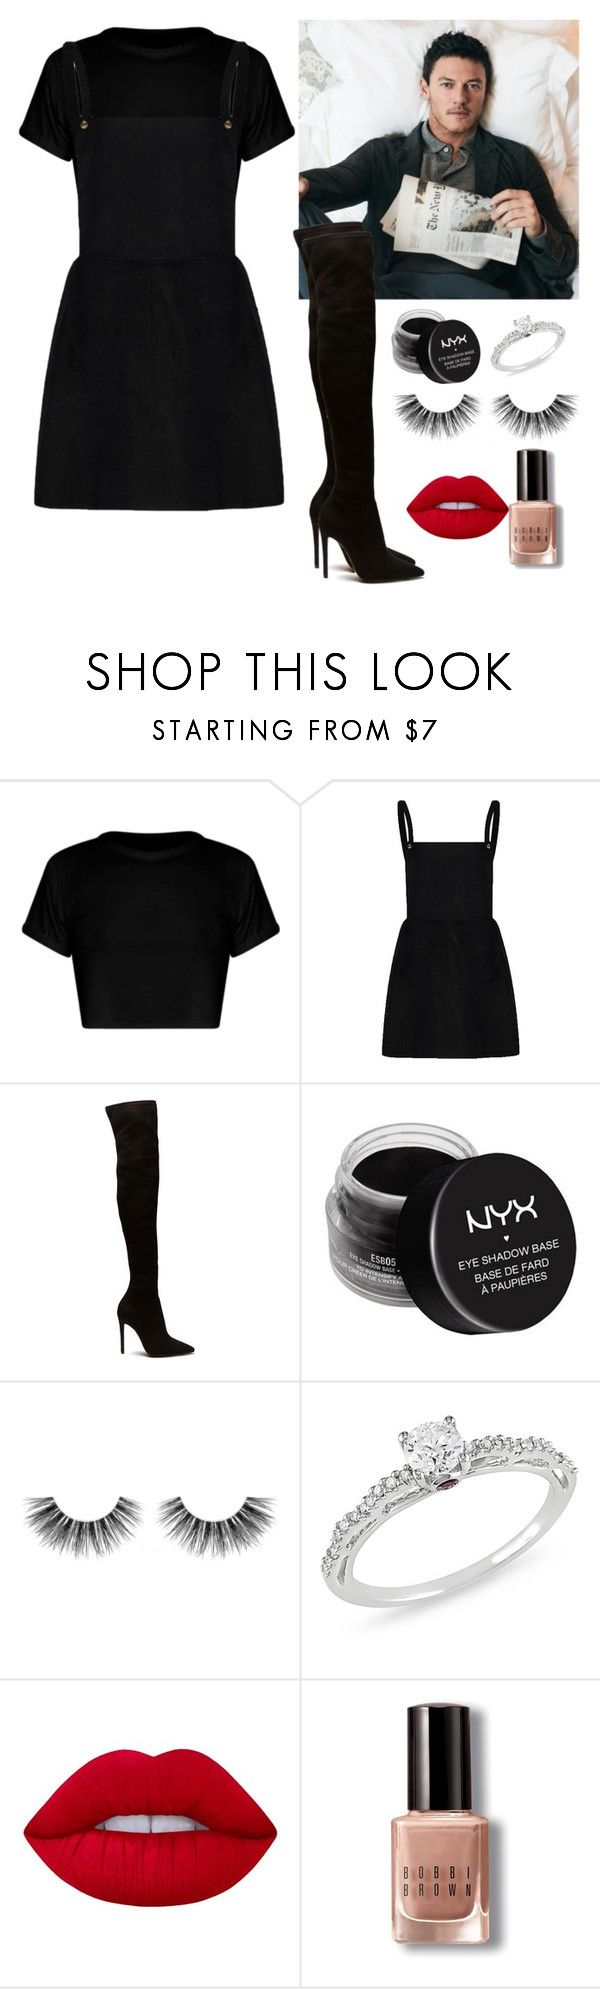 """Como olvidar tu piel?"" by arianabut1993 on Polyvore featuring moda, NYX, Velour Lashes, Ice, Lime Crime y Bobbi Brown Cosmetics"